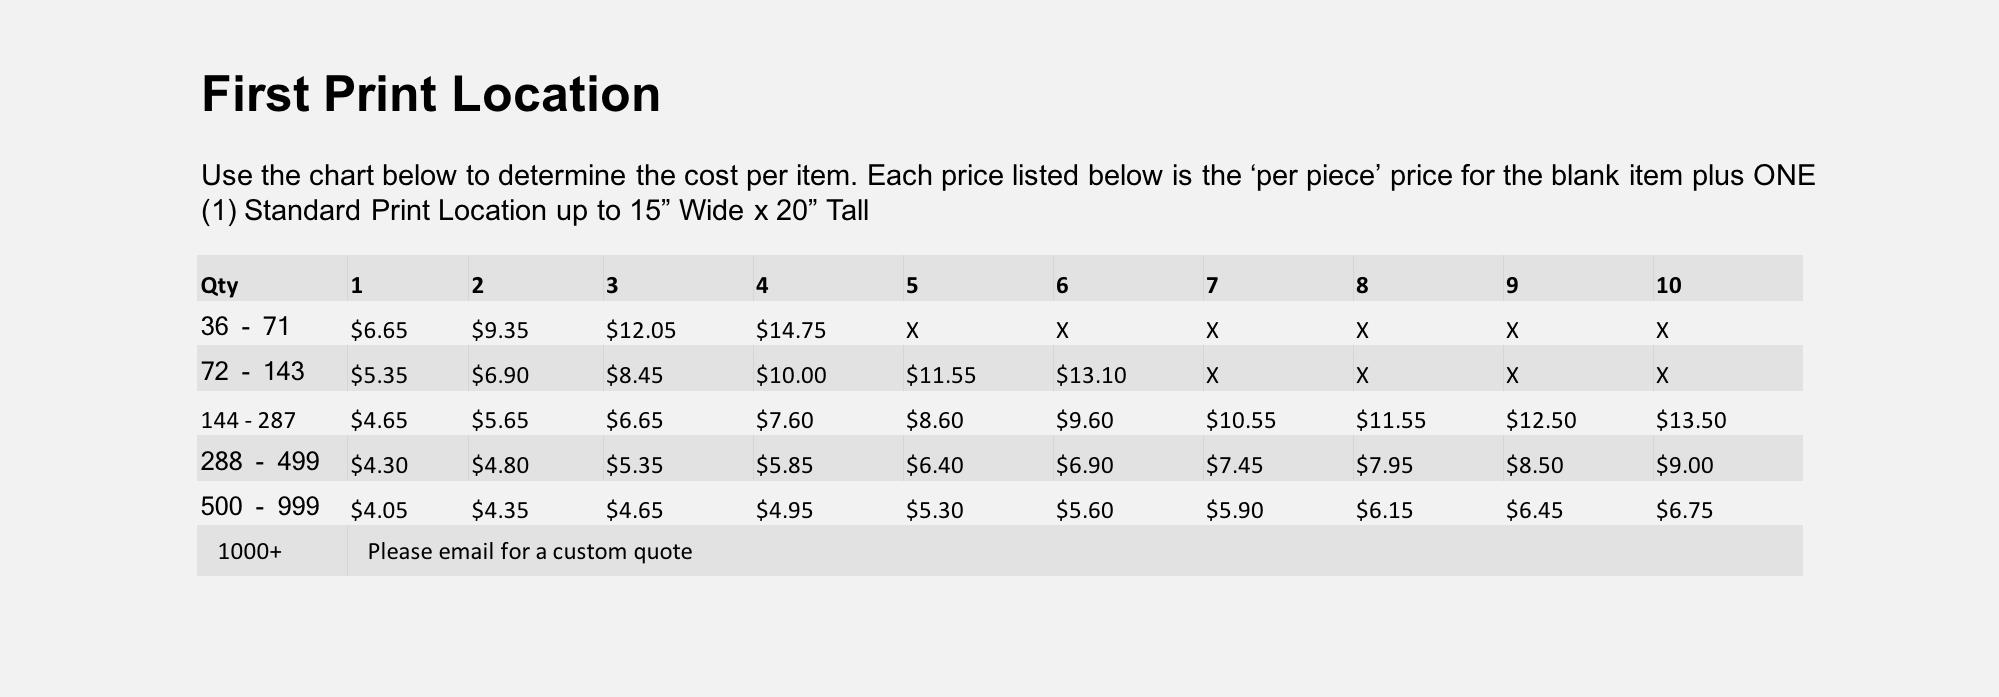 G200_Pricing.png